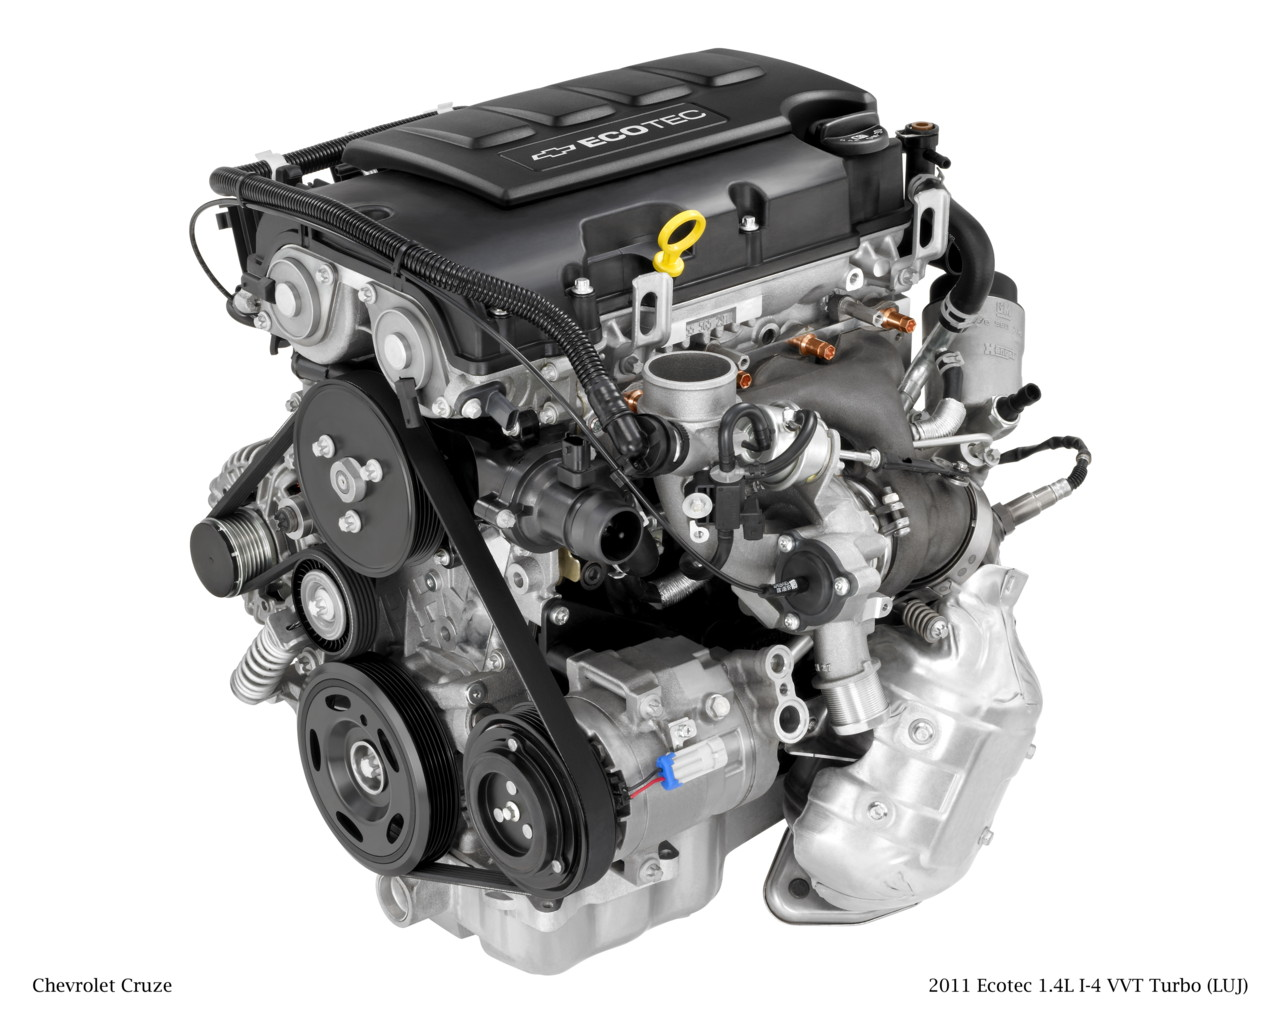 hight resolution of chevy cruze 1 4 engine diagram wiring diagram details in addition 2011 chevy cruze engine on chevy 2 ecotec engine diagram